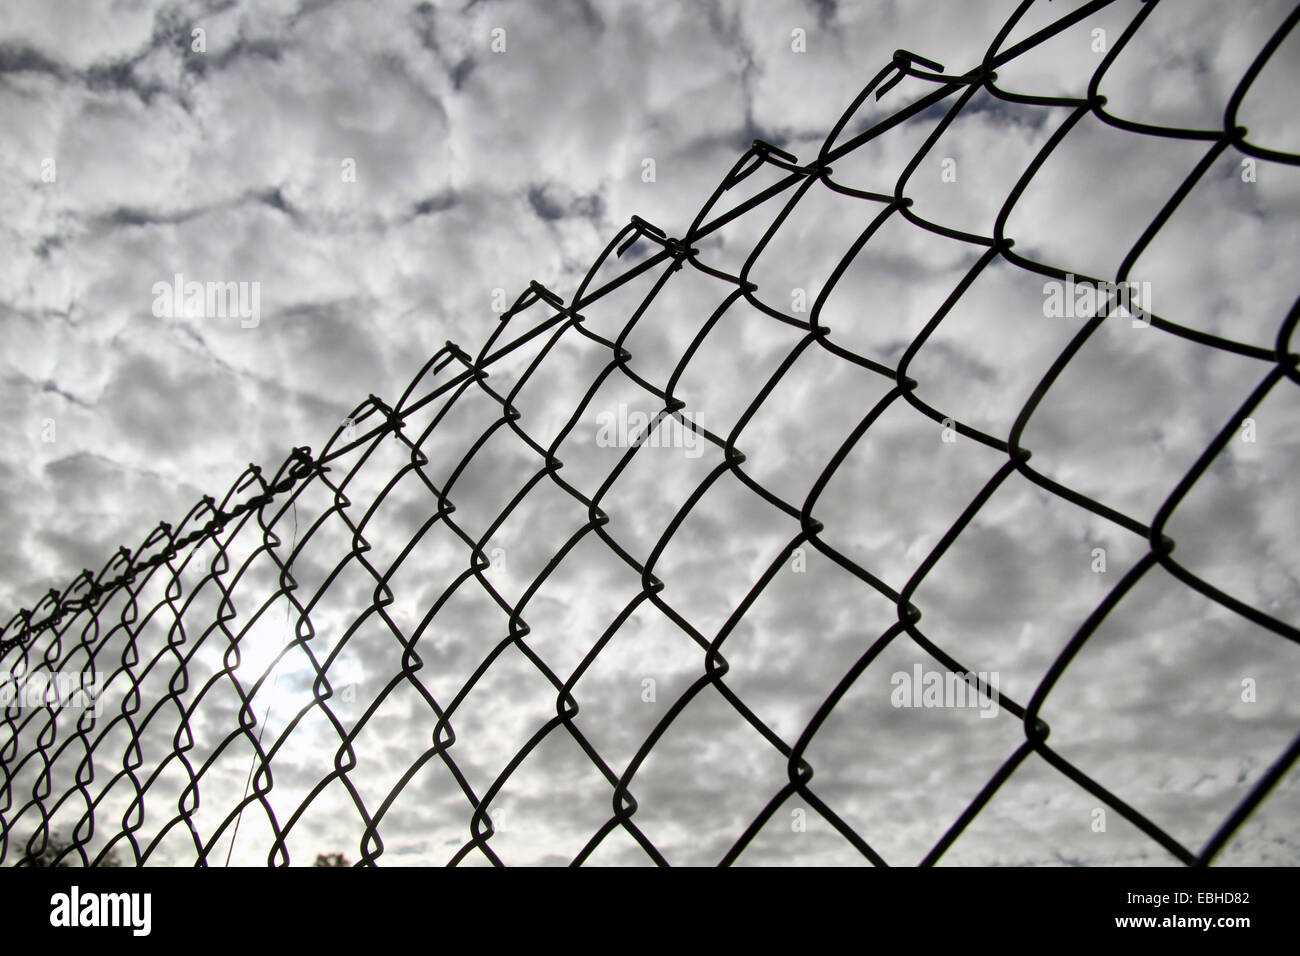 Altocumulus clouds and mesh wire fence, Germany - Stock Image